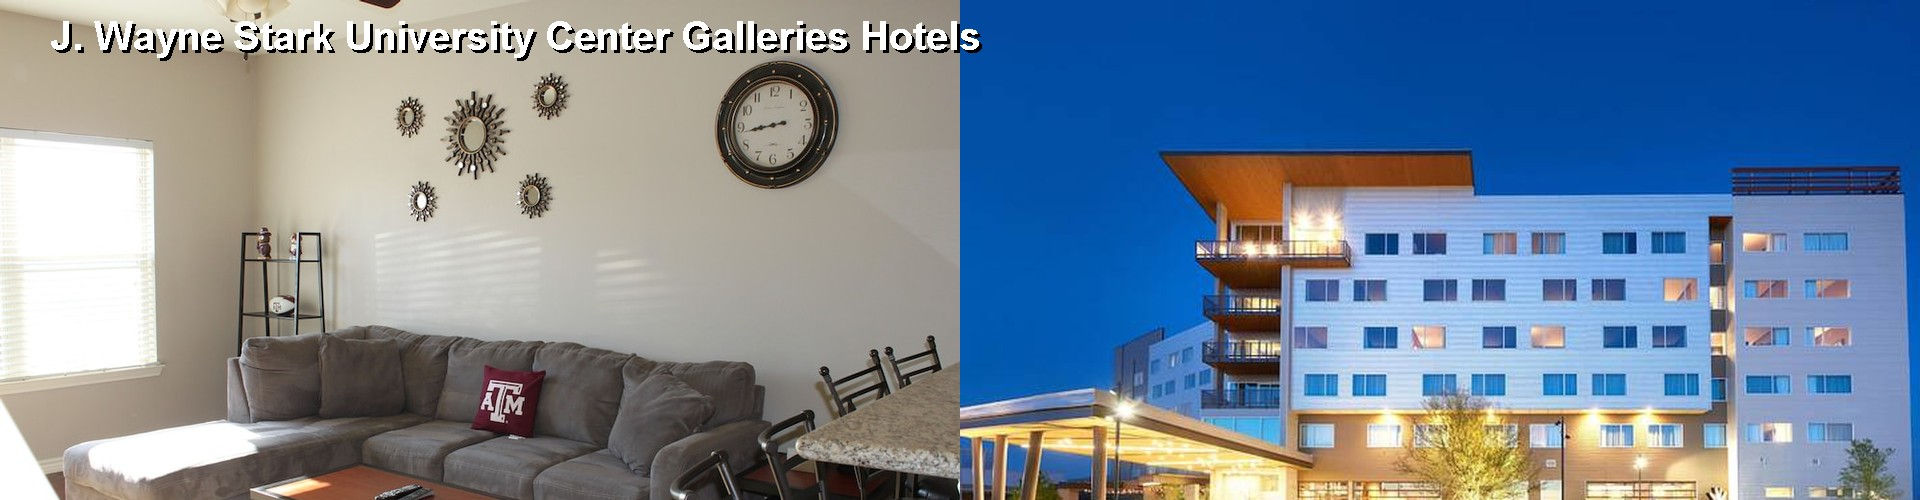 5 Best Hotels near J. Wayne Stark University Center Galleries